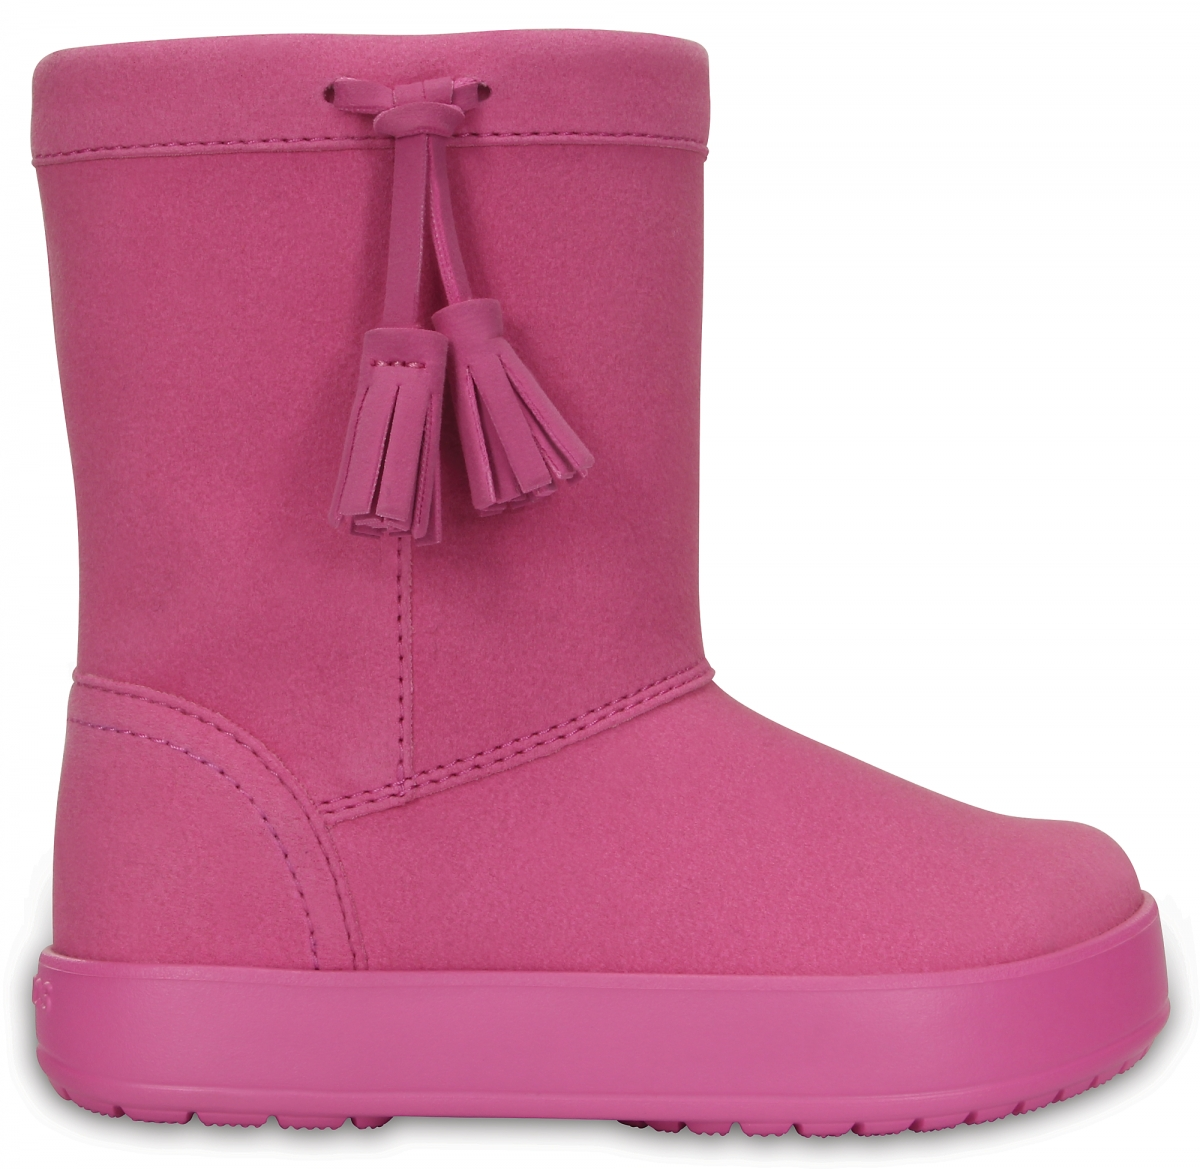 Crocs LodgePoint Boot Kids - Party Pink, C9 (25-26)